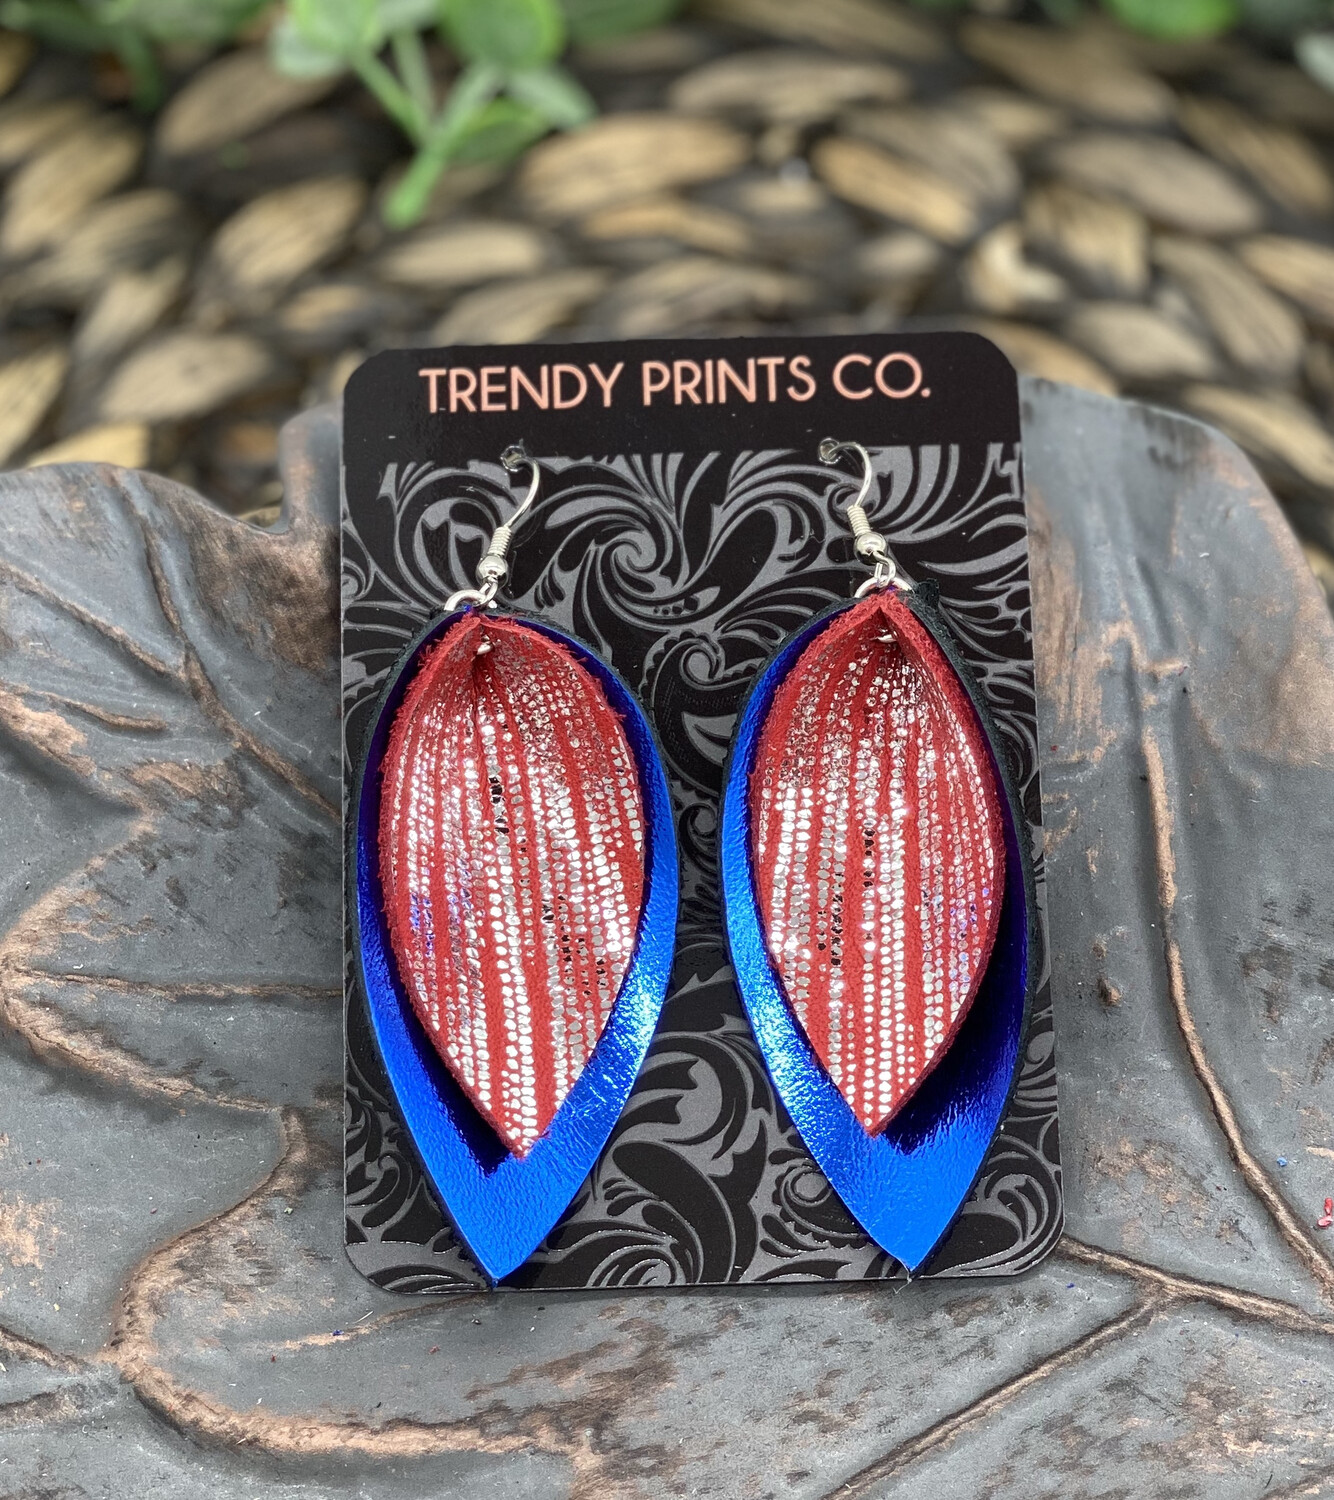 METALLIC RED/SILVER ON BLUE PINCHED LEAF LEATHER EARRINGS